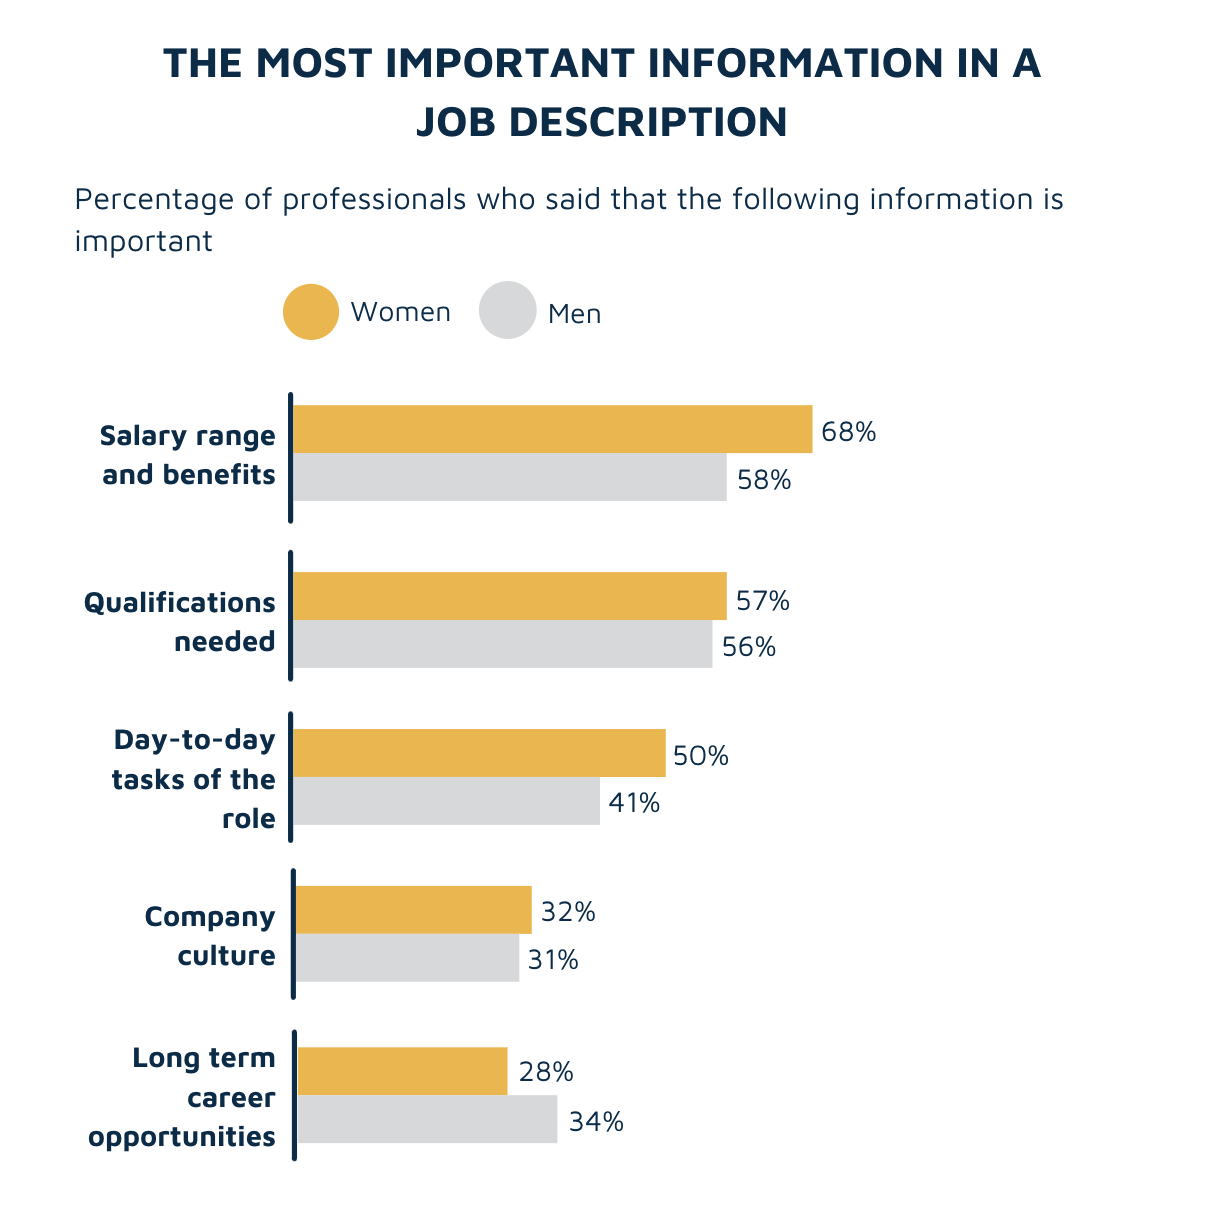 Results from survey on what is the most important information in a job description